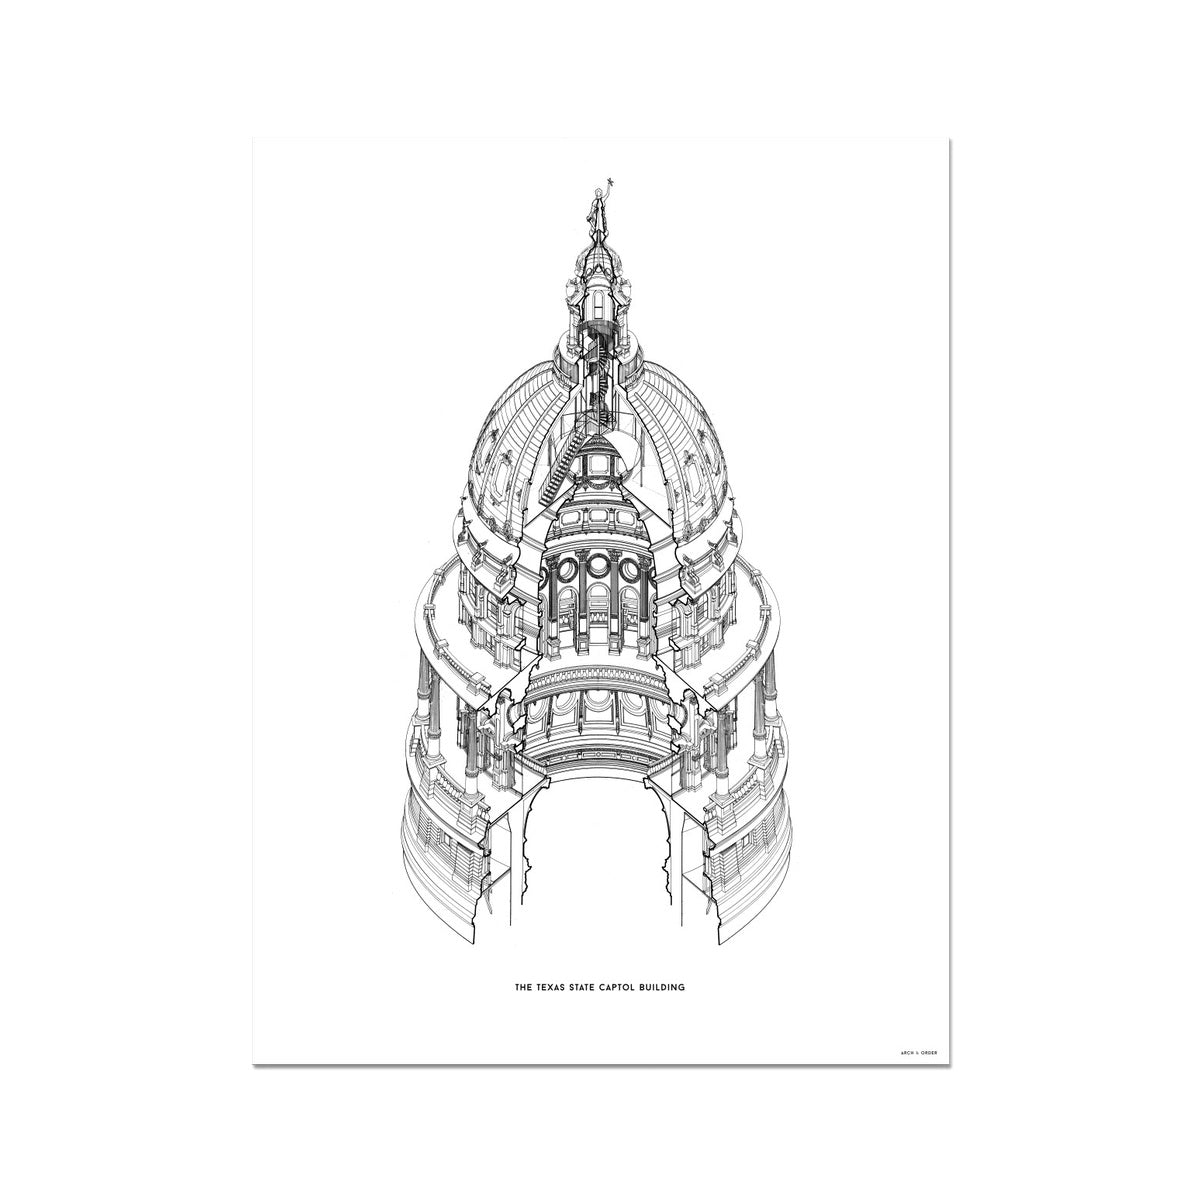 The Texas State Capitol Building - Dome Axonometric Cross Section - White - German Etching Print